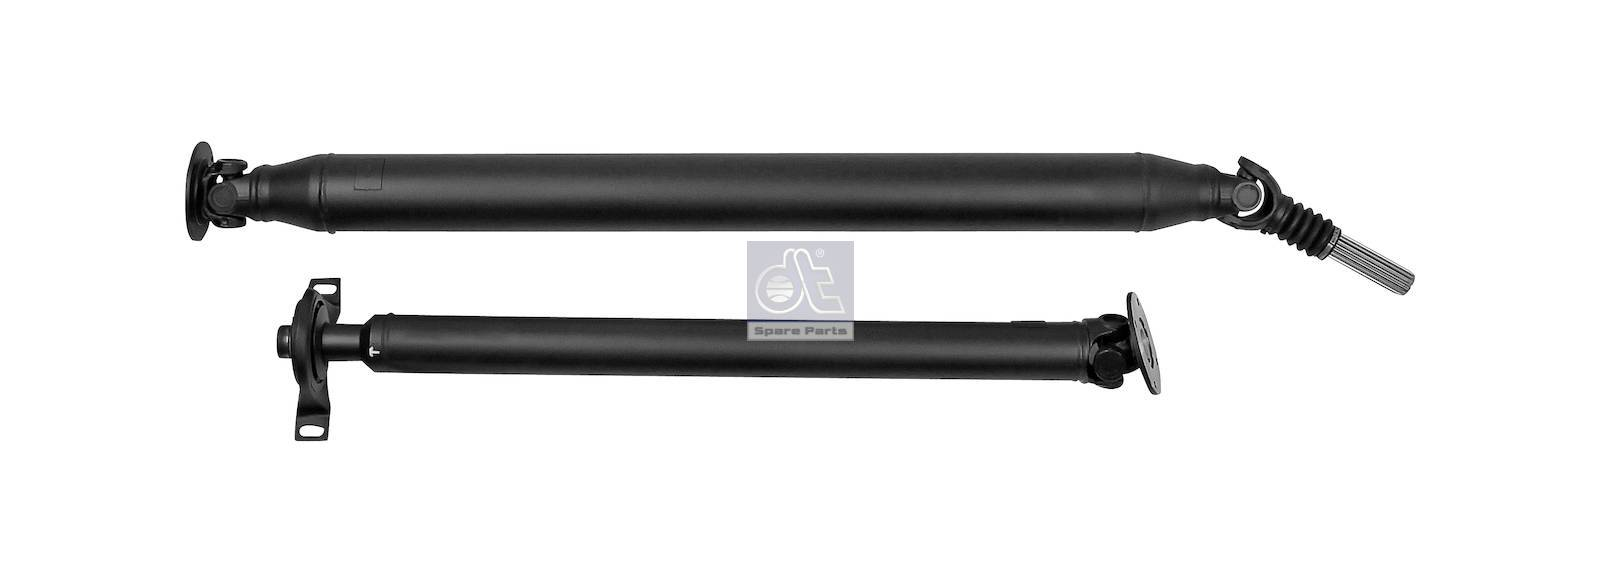 DT 4 66780 Propeller shaft 9064102716 suitable for Mercedes-Benz